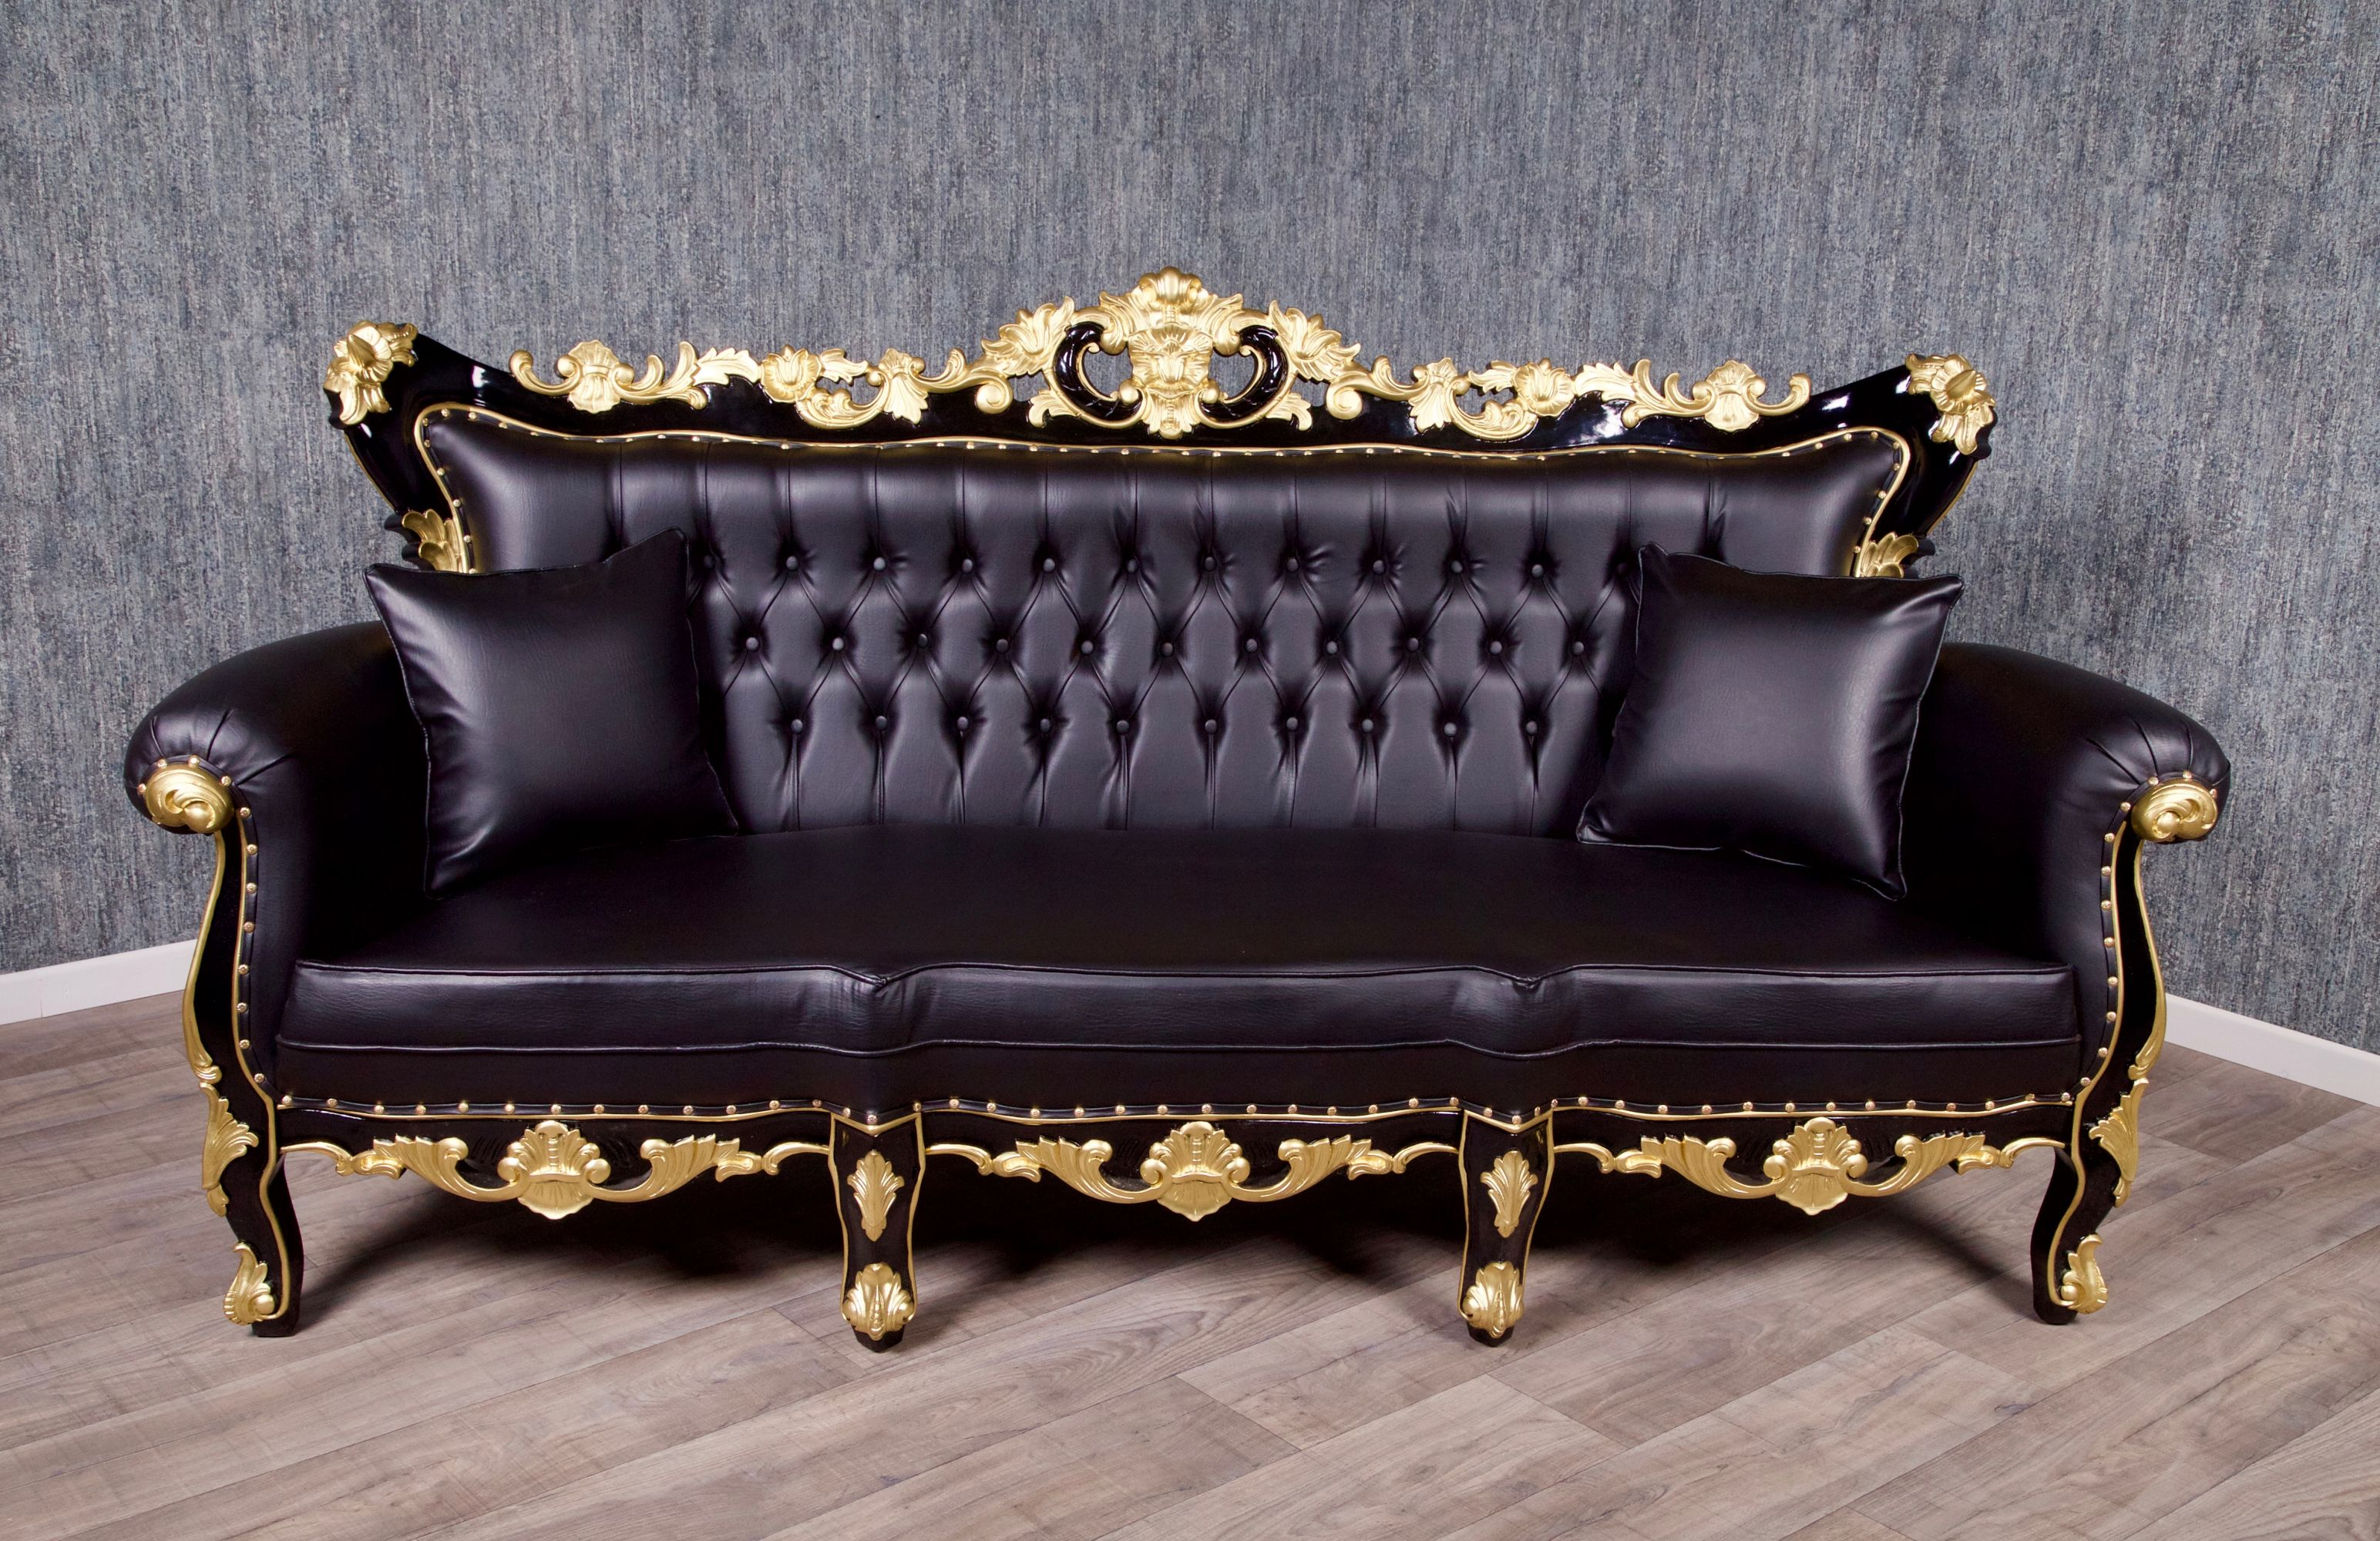 barock sofa dendrobia 3 sitzer schwarz mit gold dekor. Black Bedroom Furniture Sets. Home Design Ideas